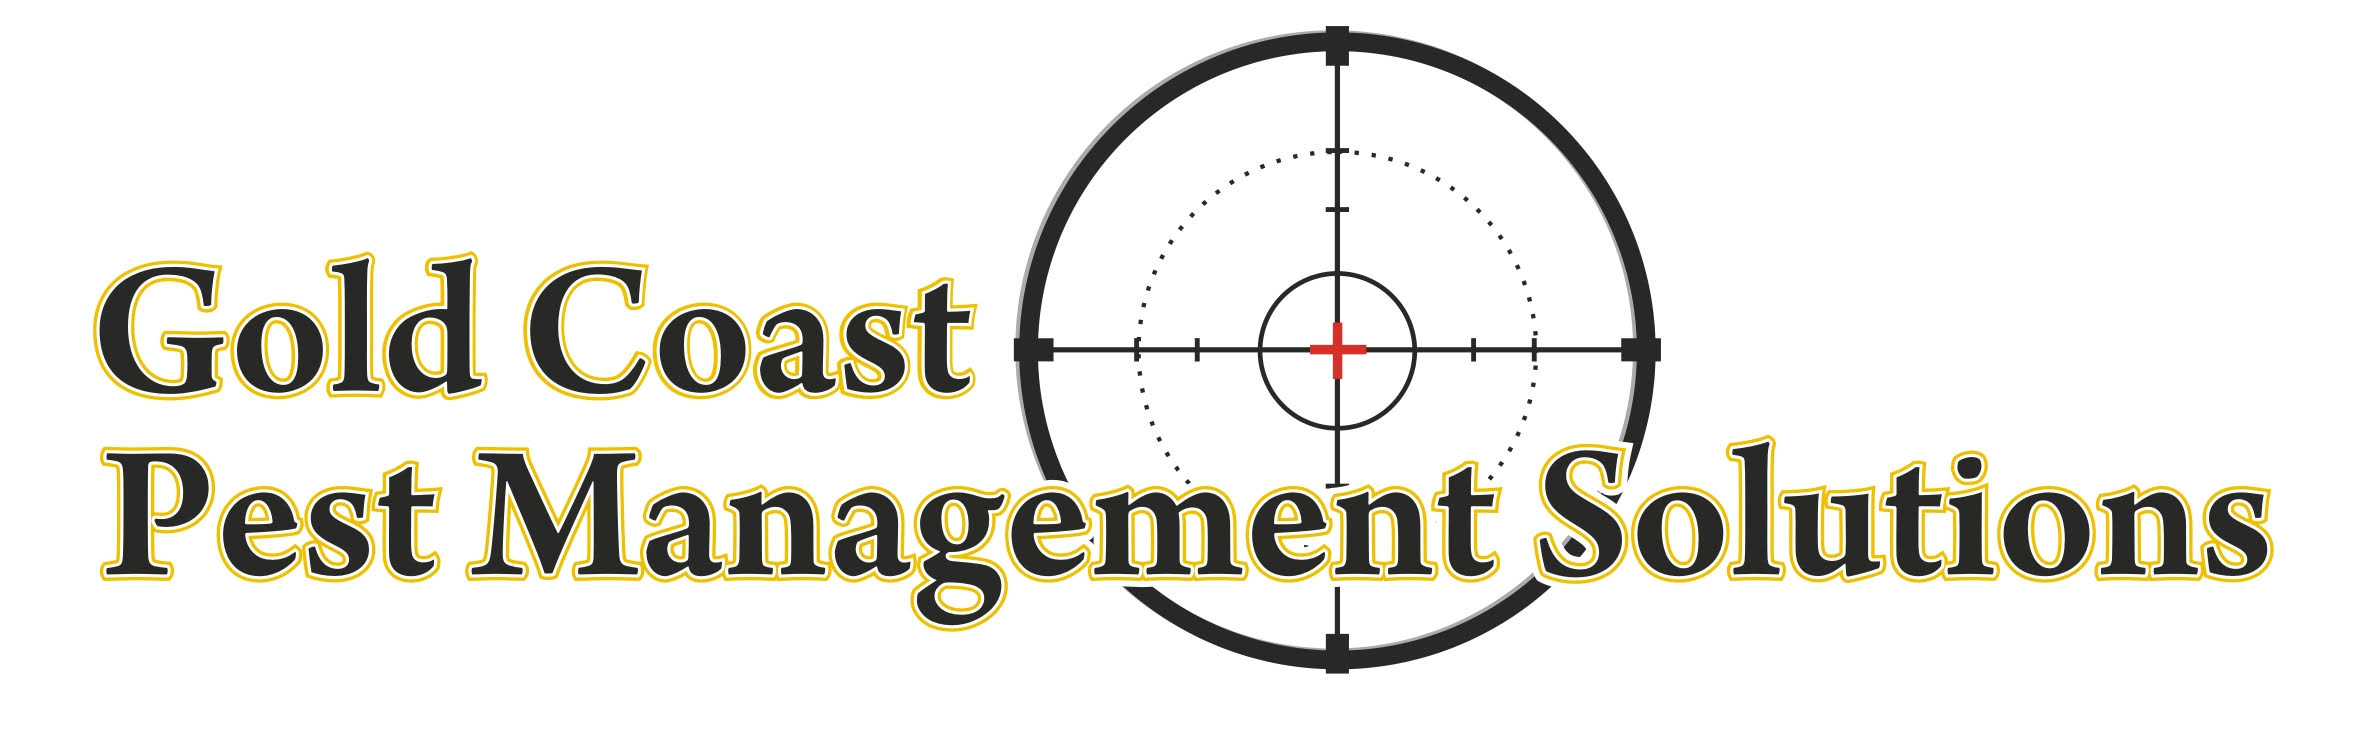 Gold Coast Pest Management Solutions